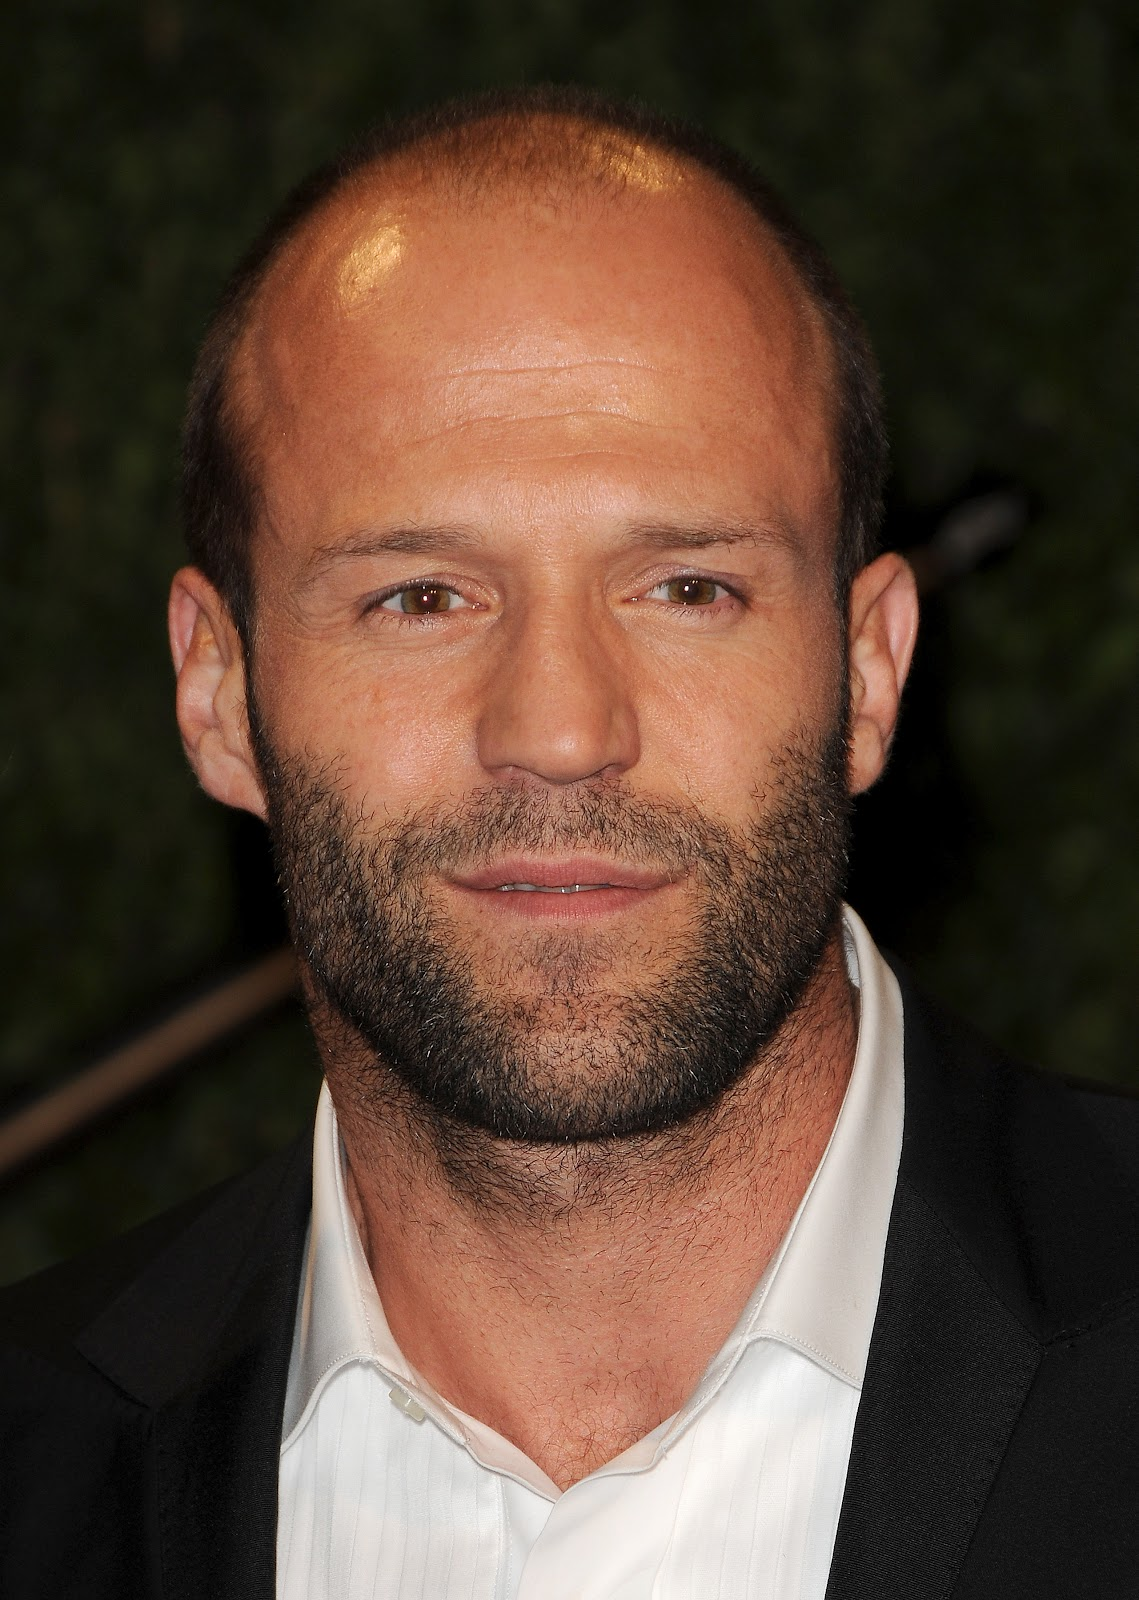 Jason Statham Hd Wallpapers High Definition Free